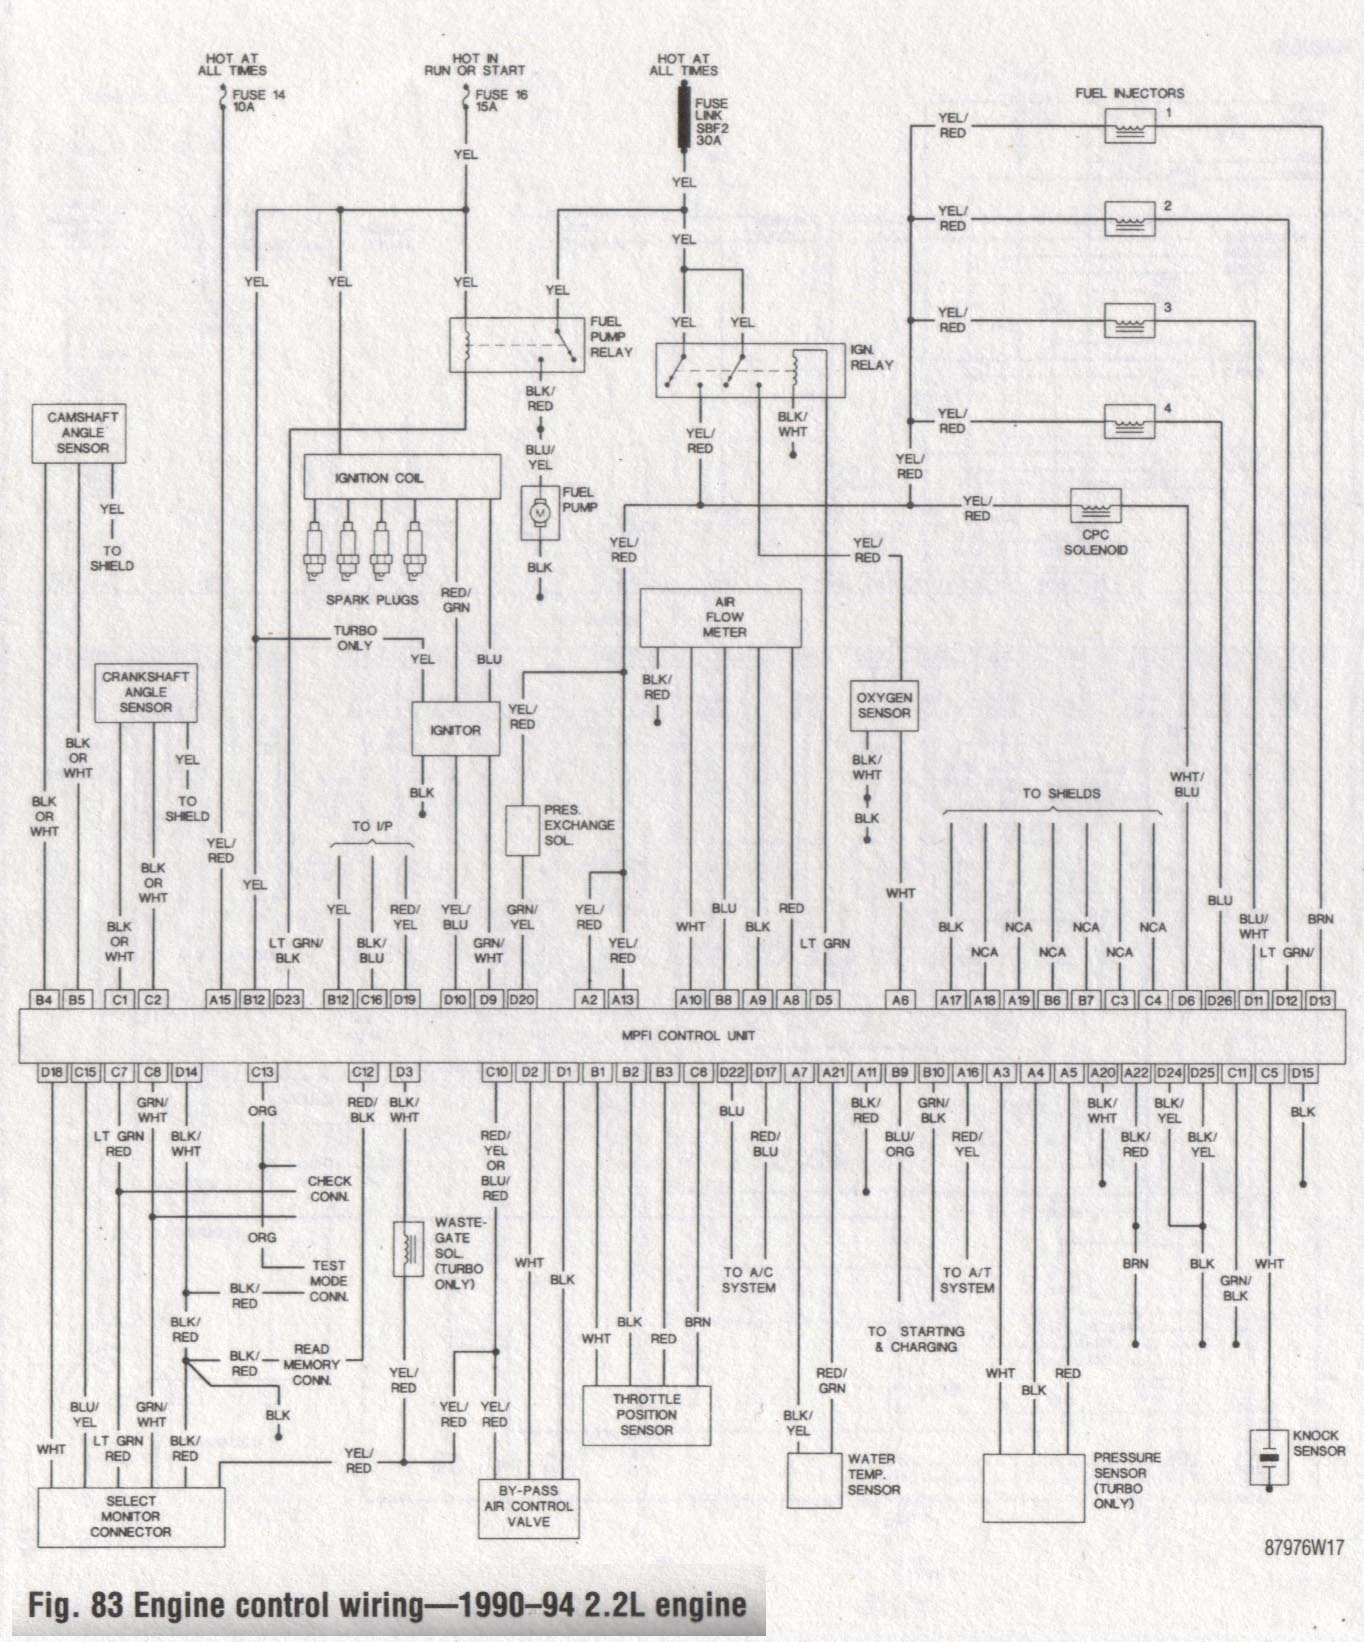 Schematic90 94Legacy vanagon restoration for the compleat idiot VW Wiring Harness Diagram at edmiracle.co